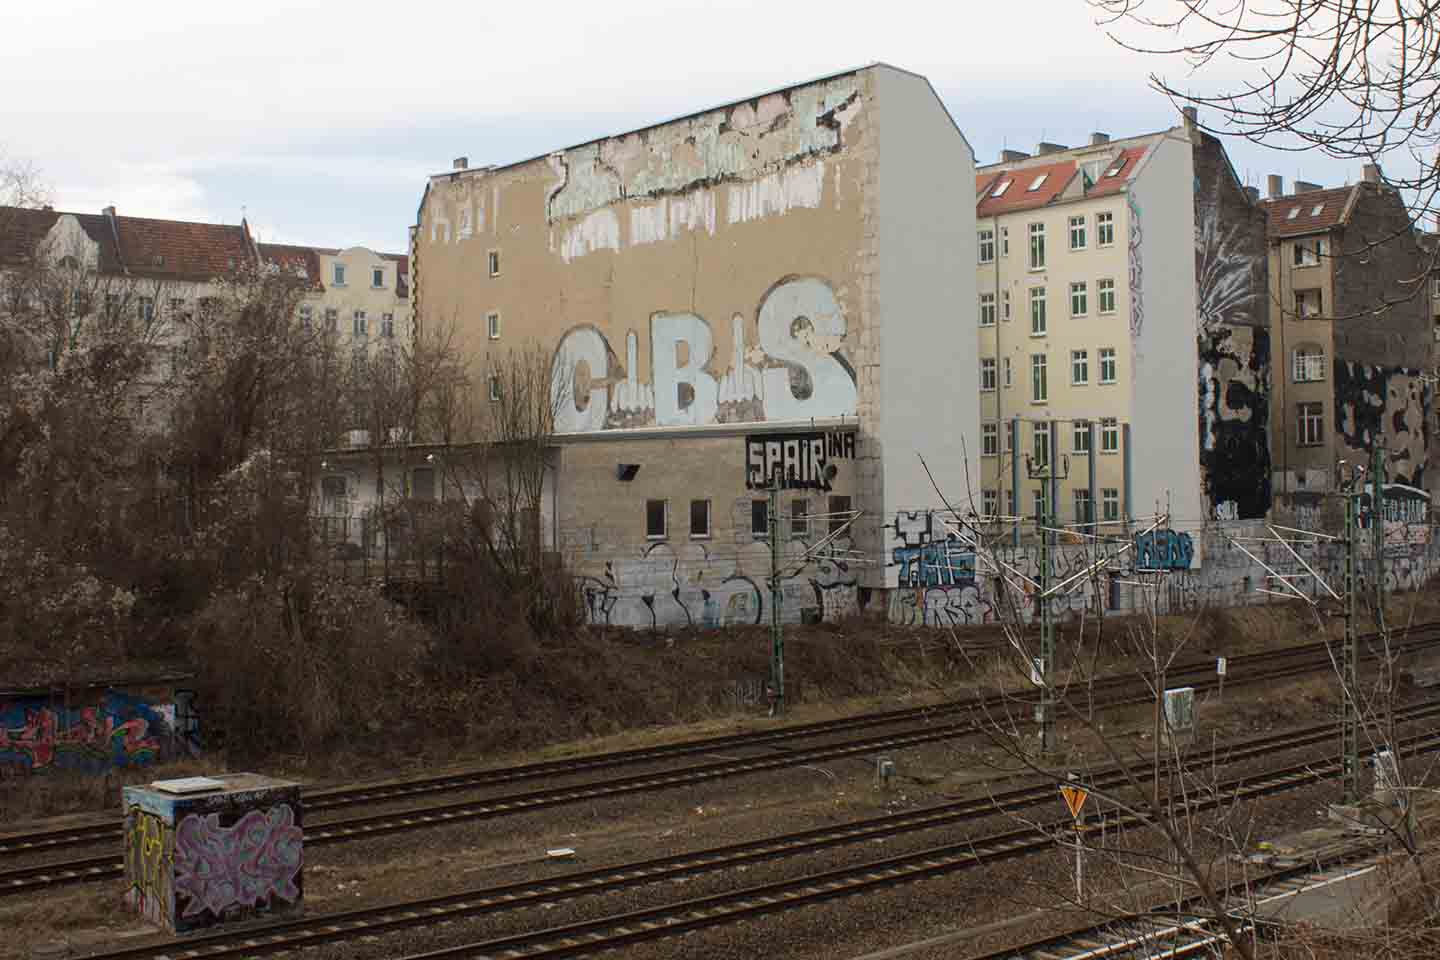 CBS Crew (Cowboys)  Roll on Bombing near Schnoenhauser Alle station in Berlin. Graffiti photo by Street Art Berlin